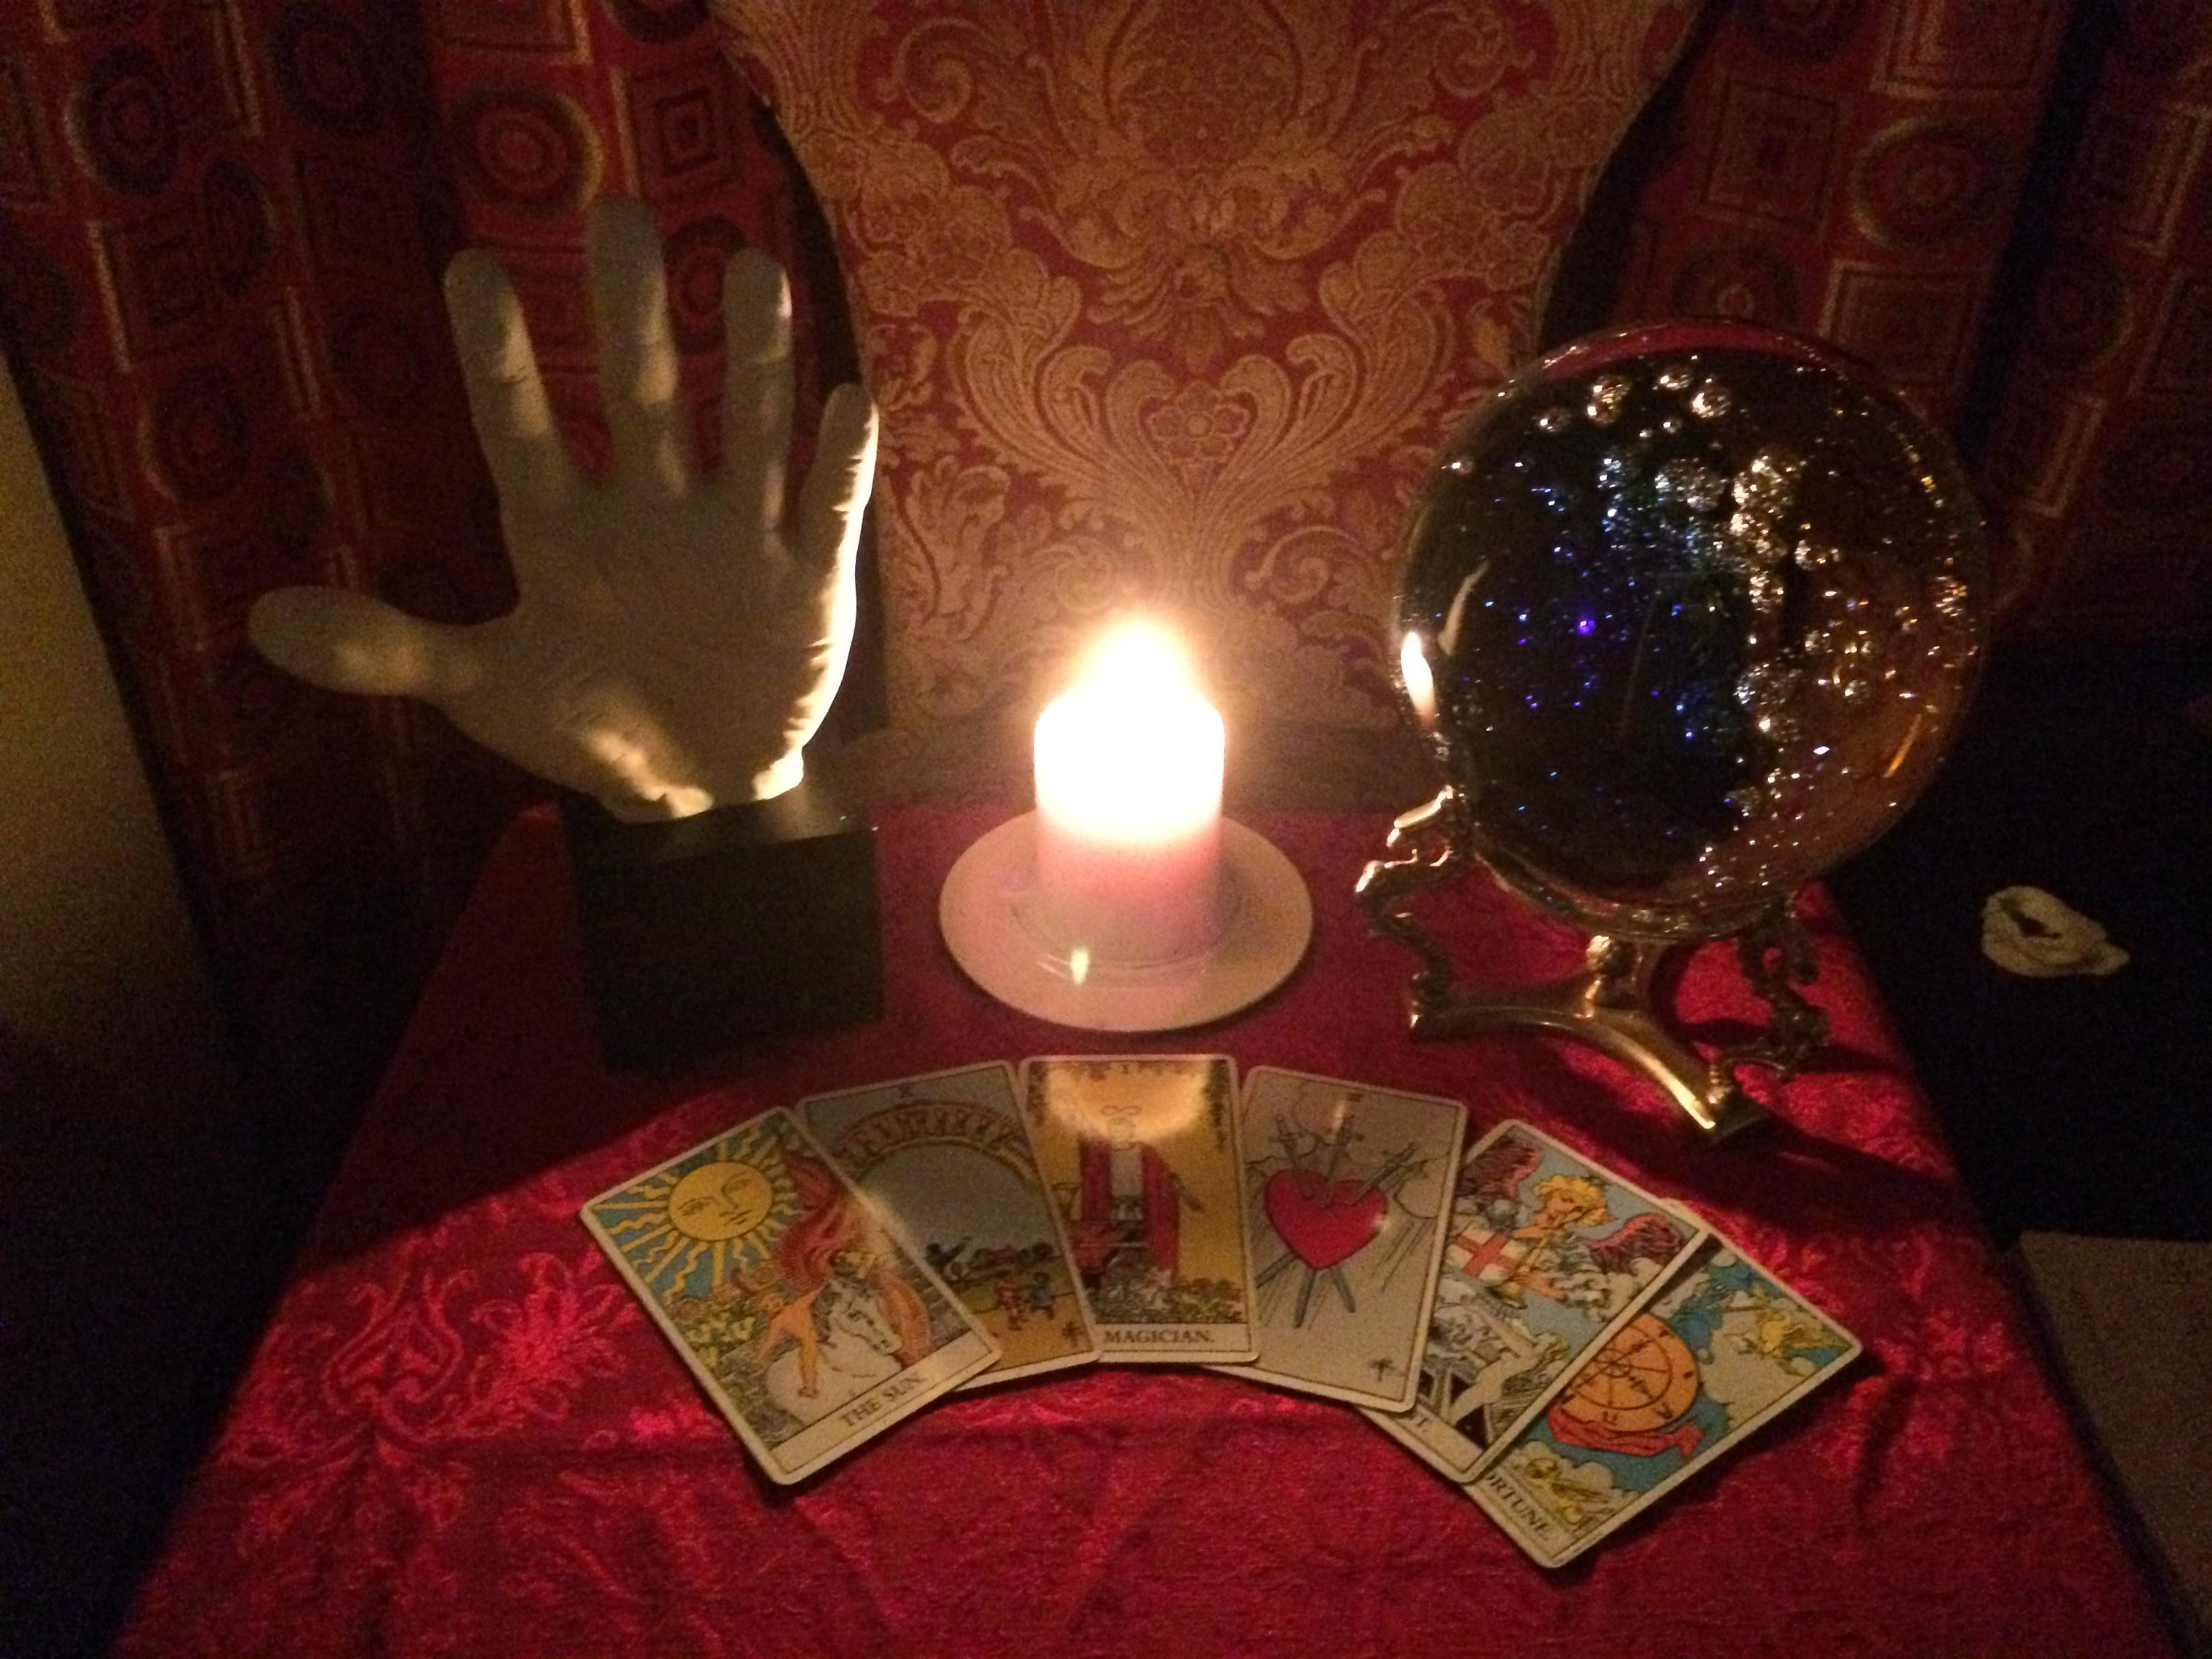 45-Minute Psychic, Palm, and Tarot Card Reading